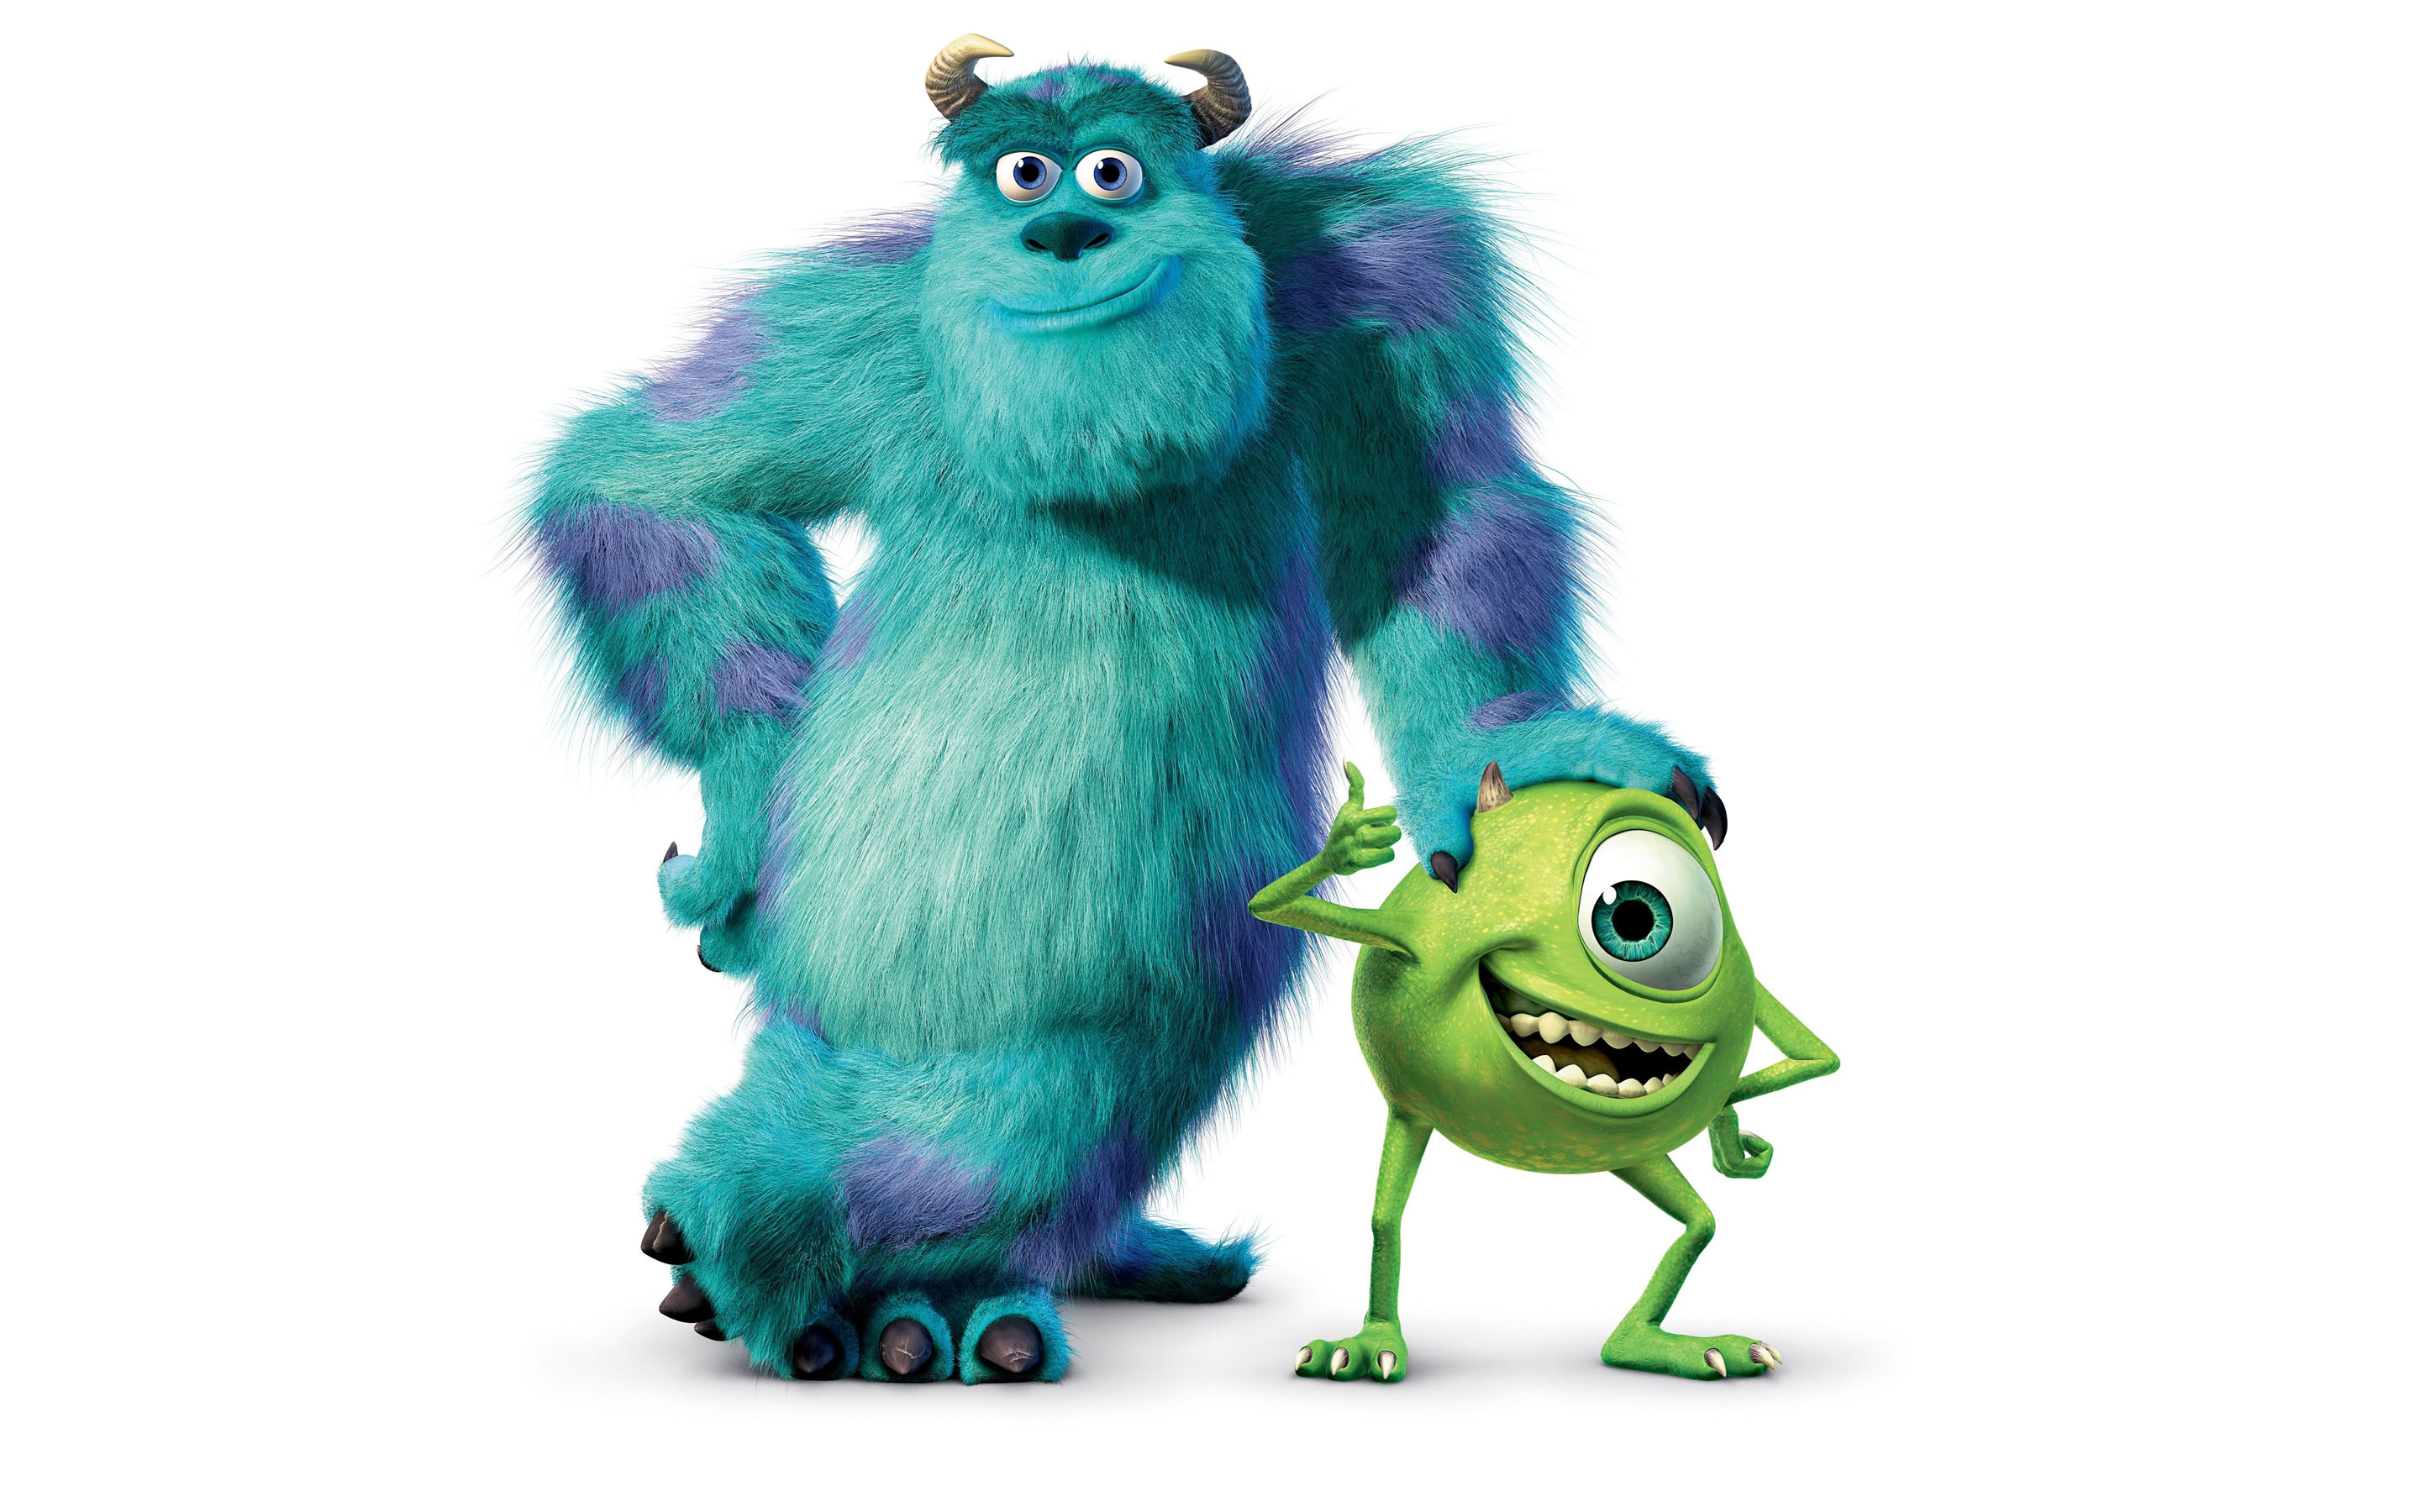 . PlusPng.com 2560x1600 Monsters, Inc. HD Wallpaper 2880x1800 - Monsters Inc Characters PNG